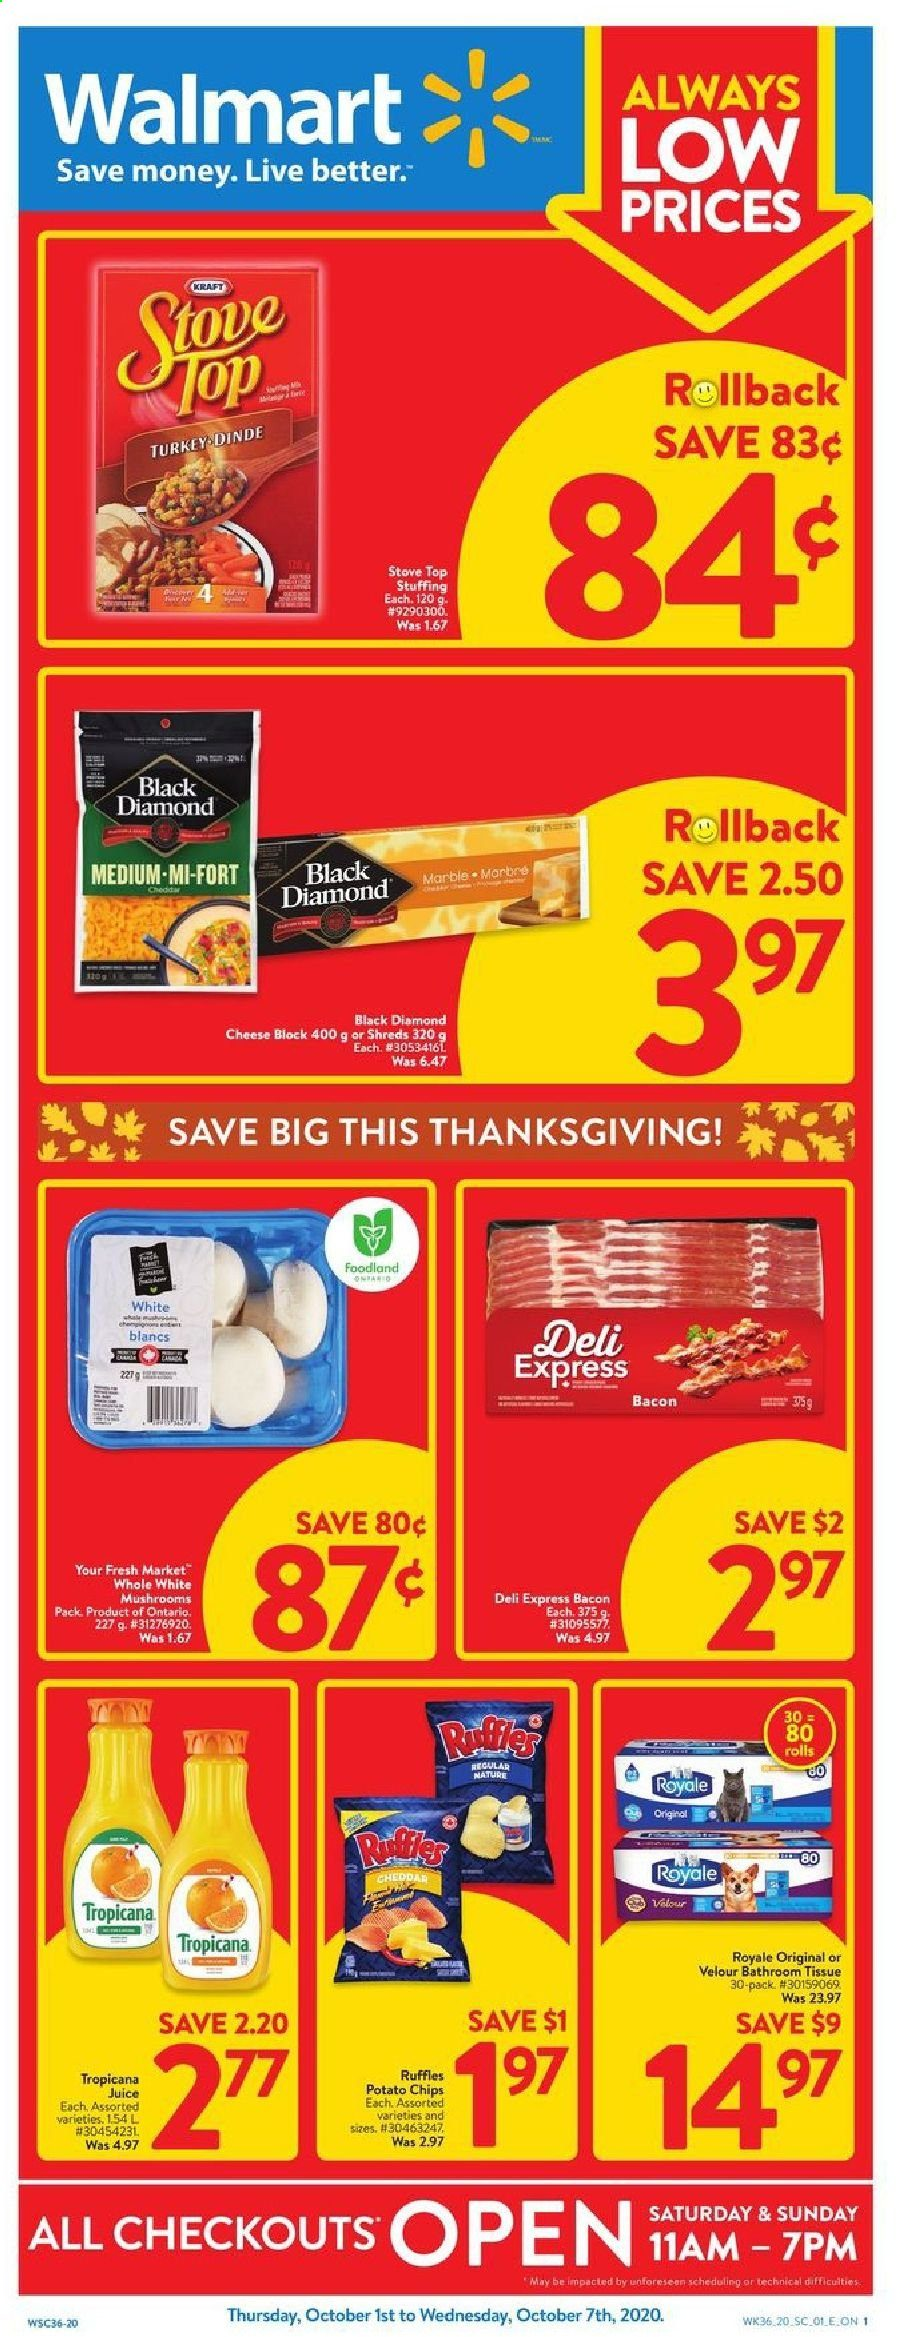 Walmart Flyer - October 01, 2020 - October 07, 2020 - Sales products - always, bacon, mushrooms, turkey, potato chips, cheddar, chips, cheese, juice, dinde, marble, tropicana, stove, rolls. Page 1.